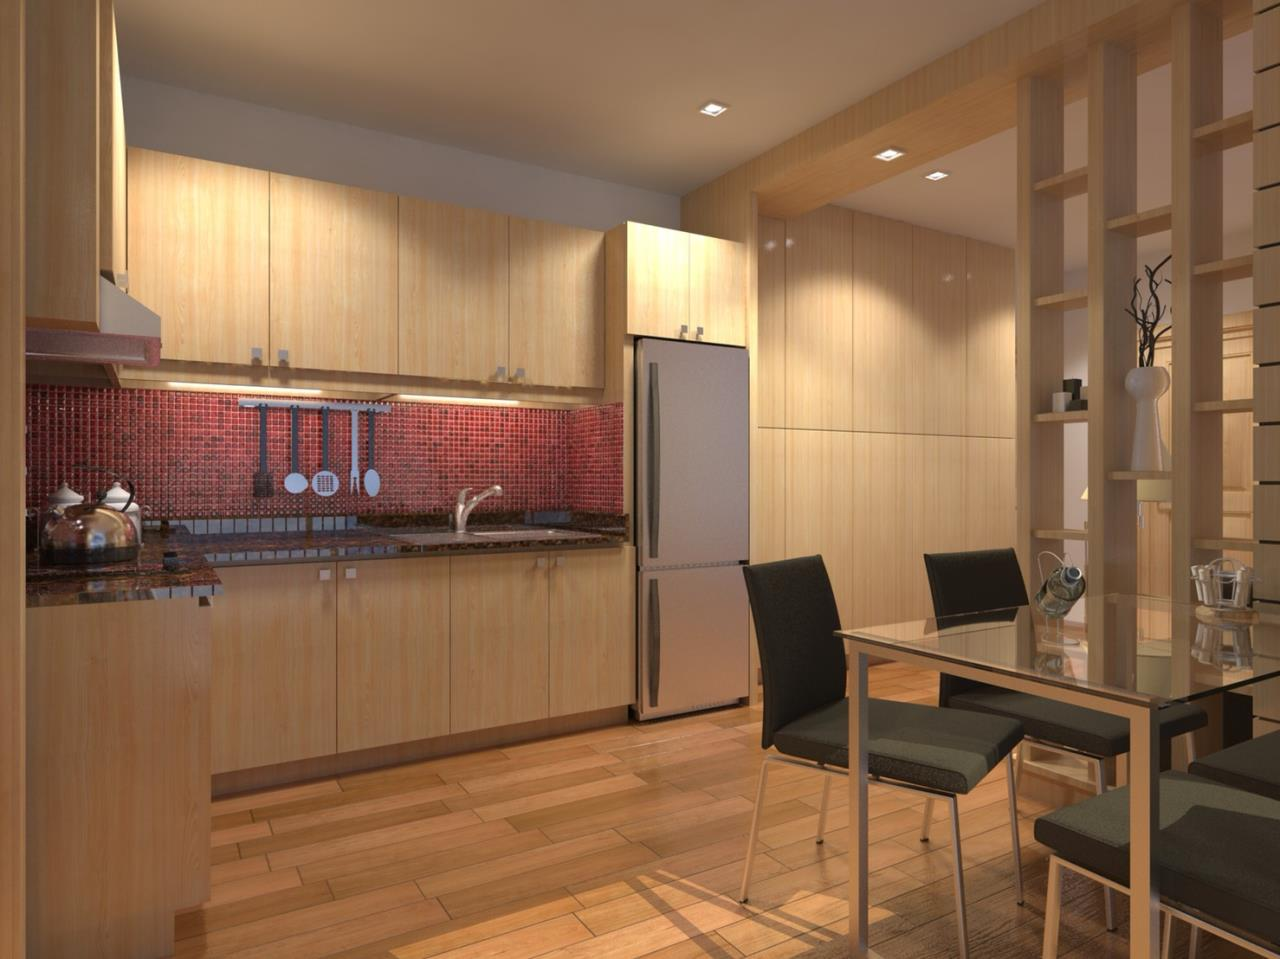 Signature Realty ( Thailand ) Co Ltd Agency's Furnished 1bedroom 46 sq.m condo with jacuzzi floor 21-31 at The Grand Jomtein Beach Pattaya 30